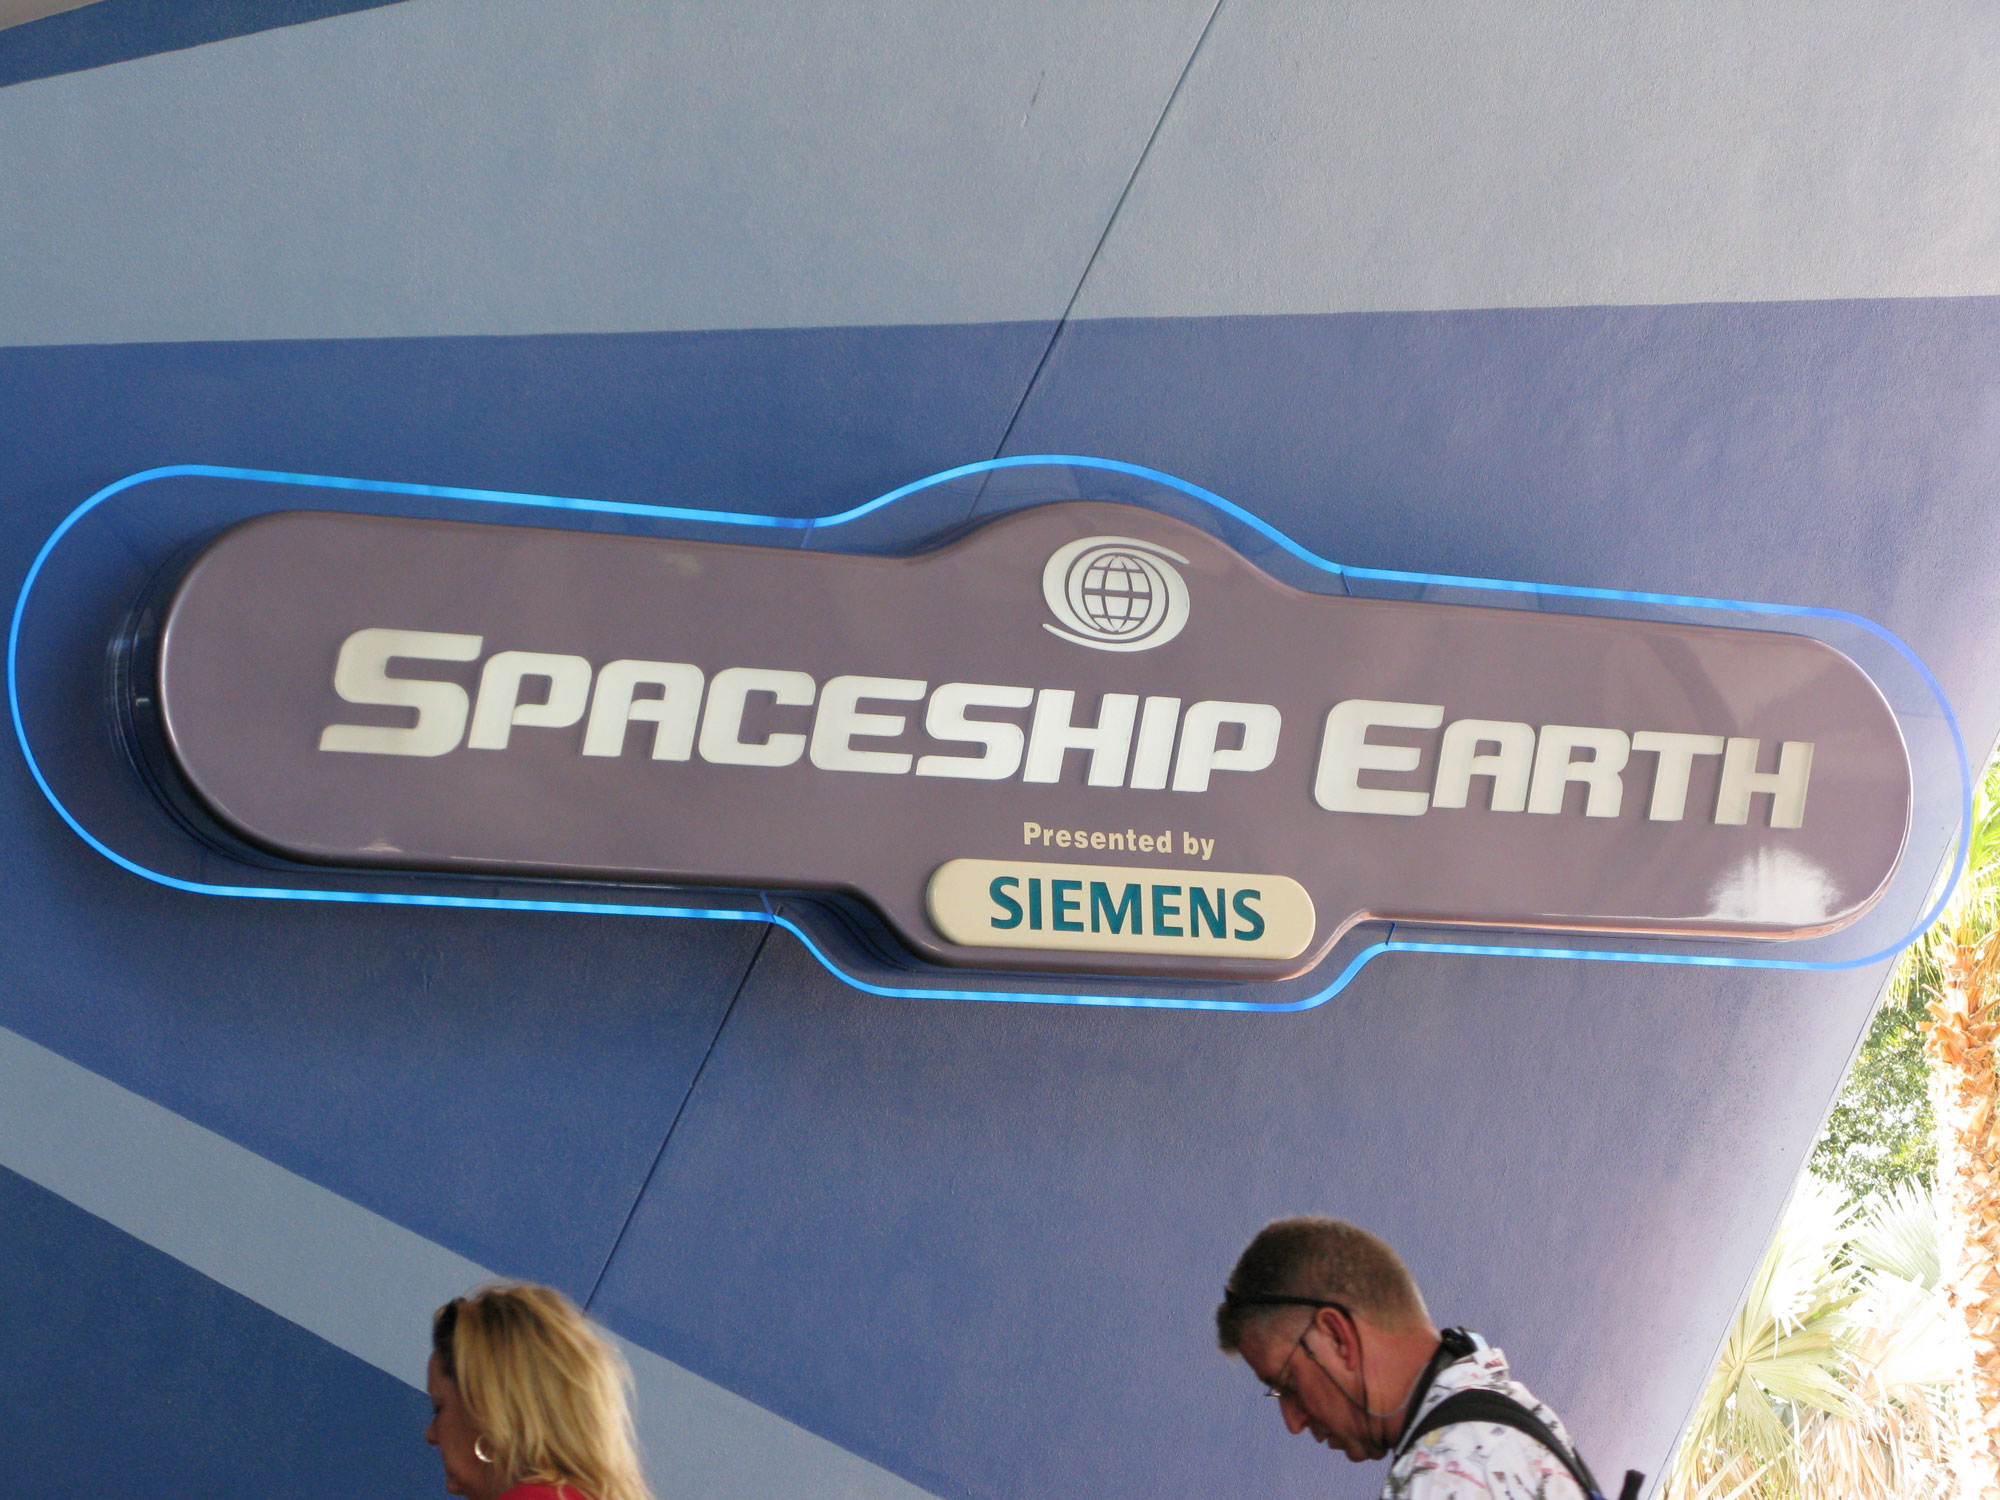 Spaceship Earth by Siemens sign